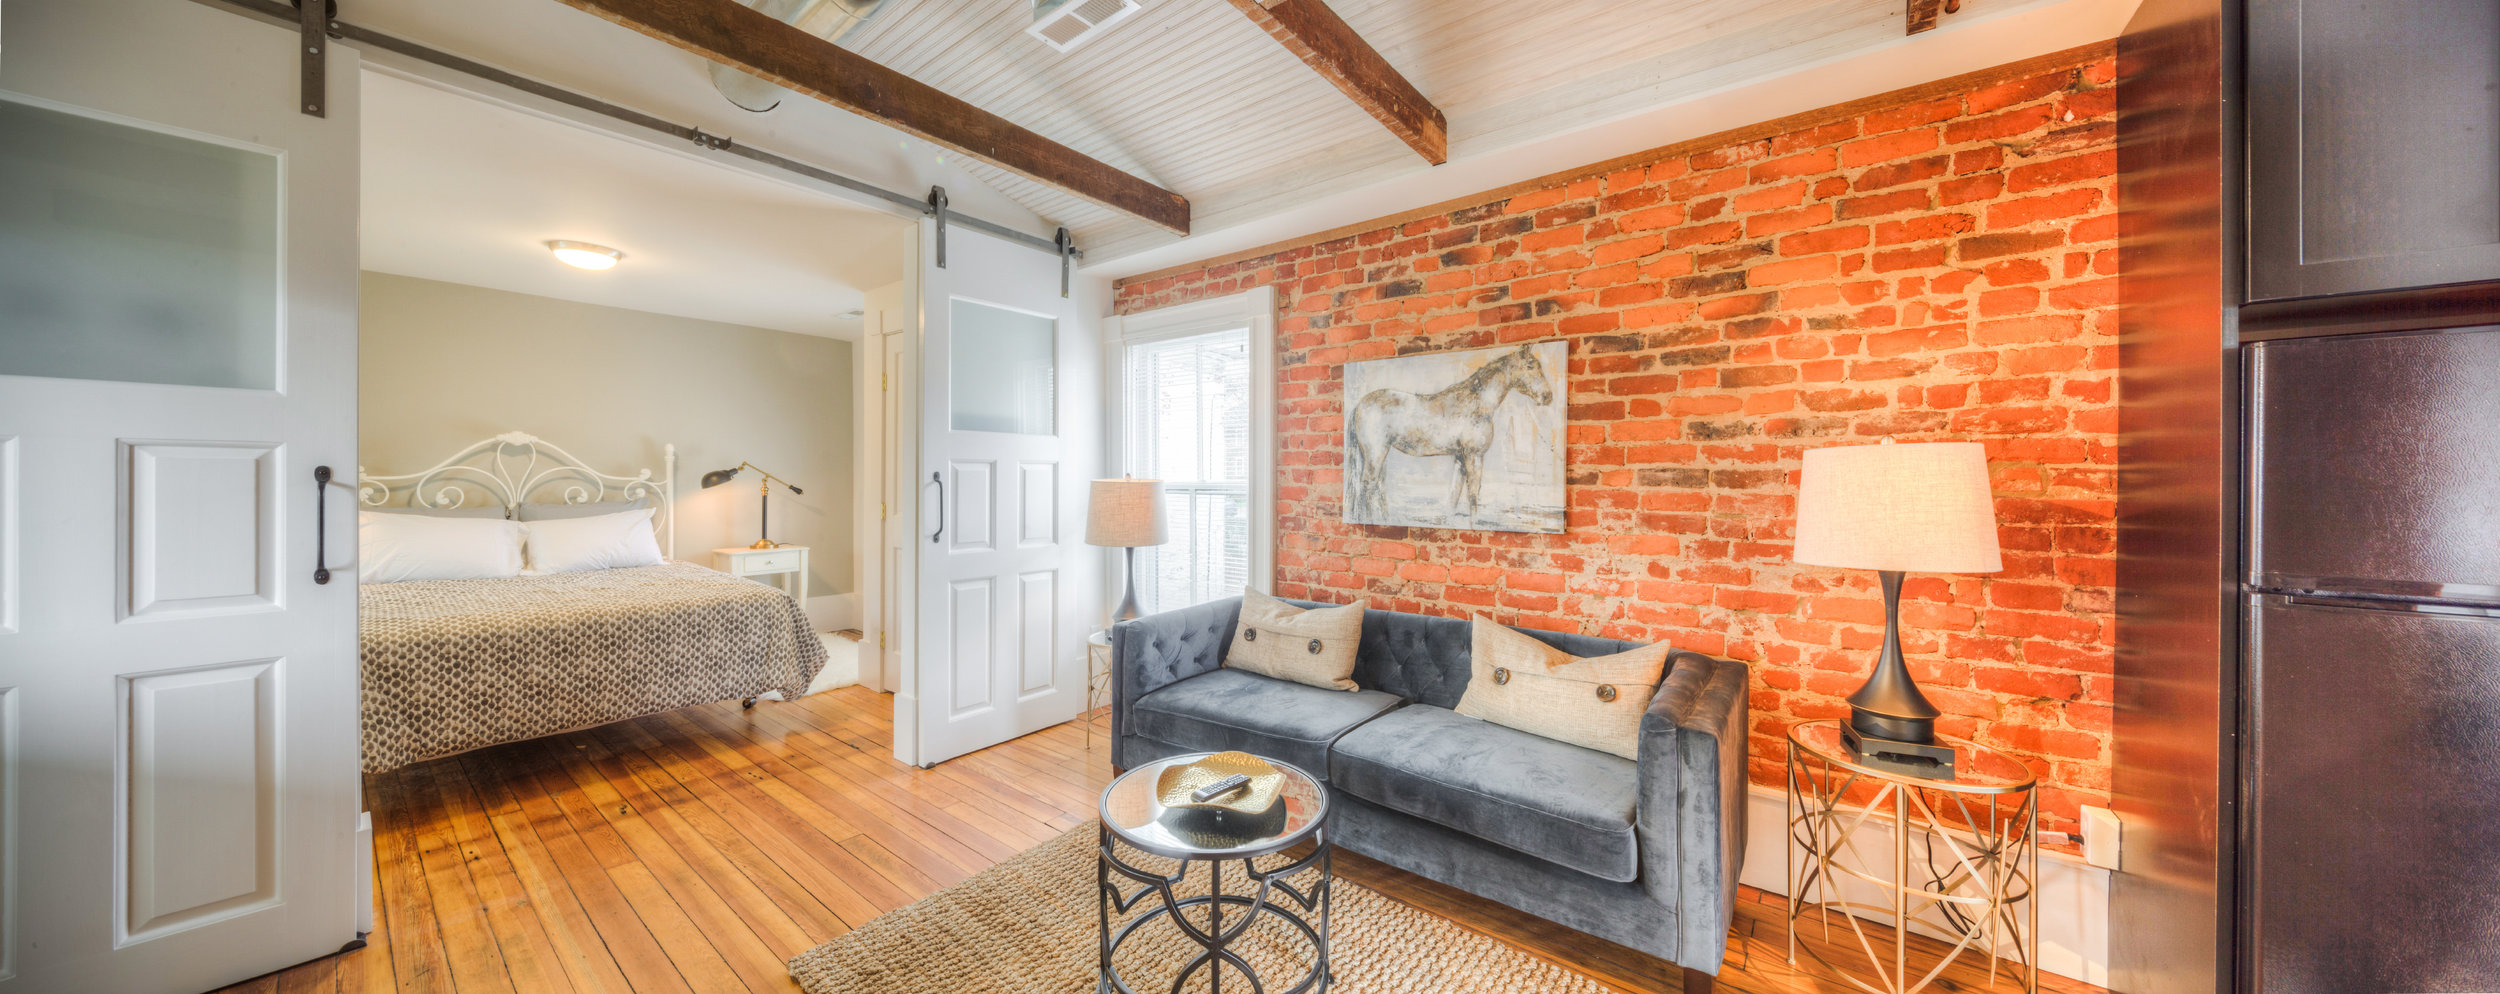 The Elegant Vacation Rental | Charlottesville, VA